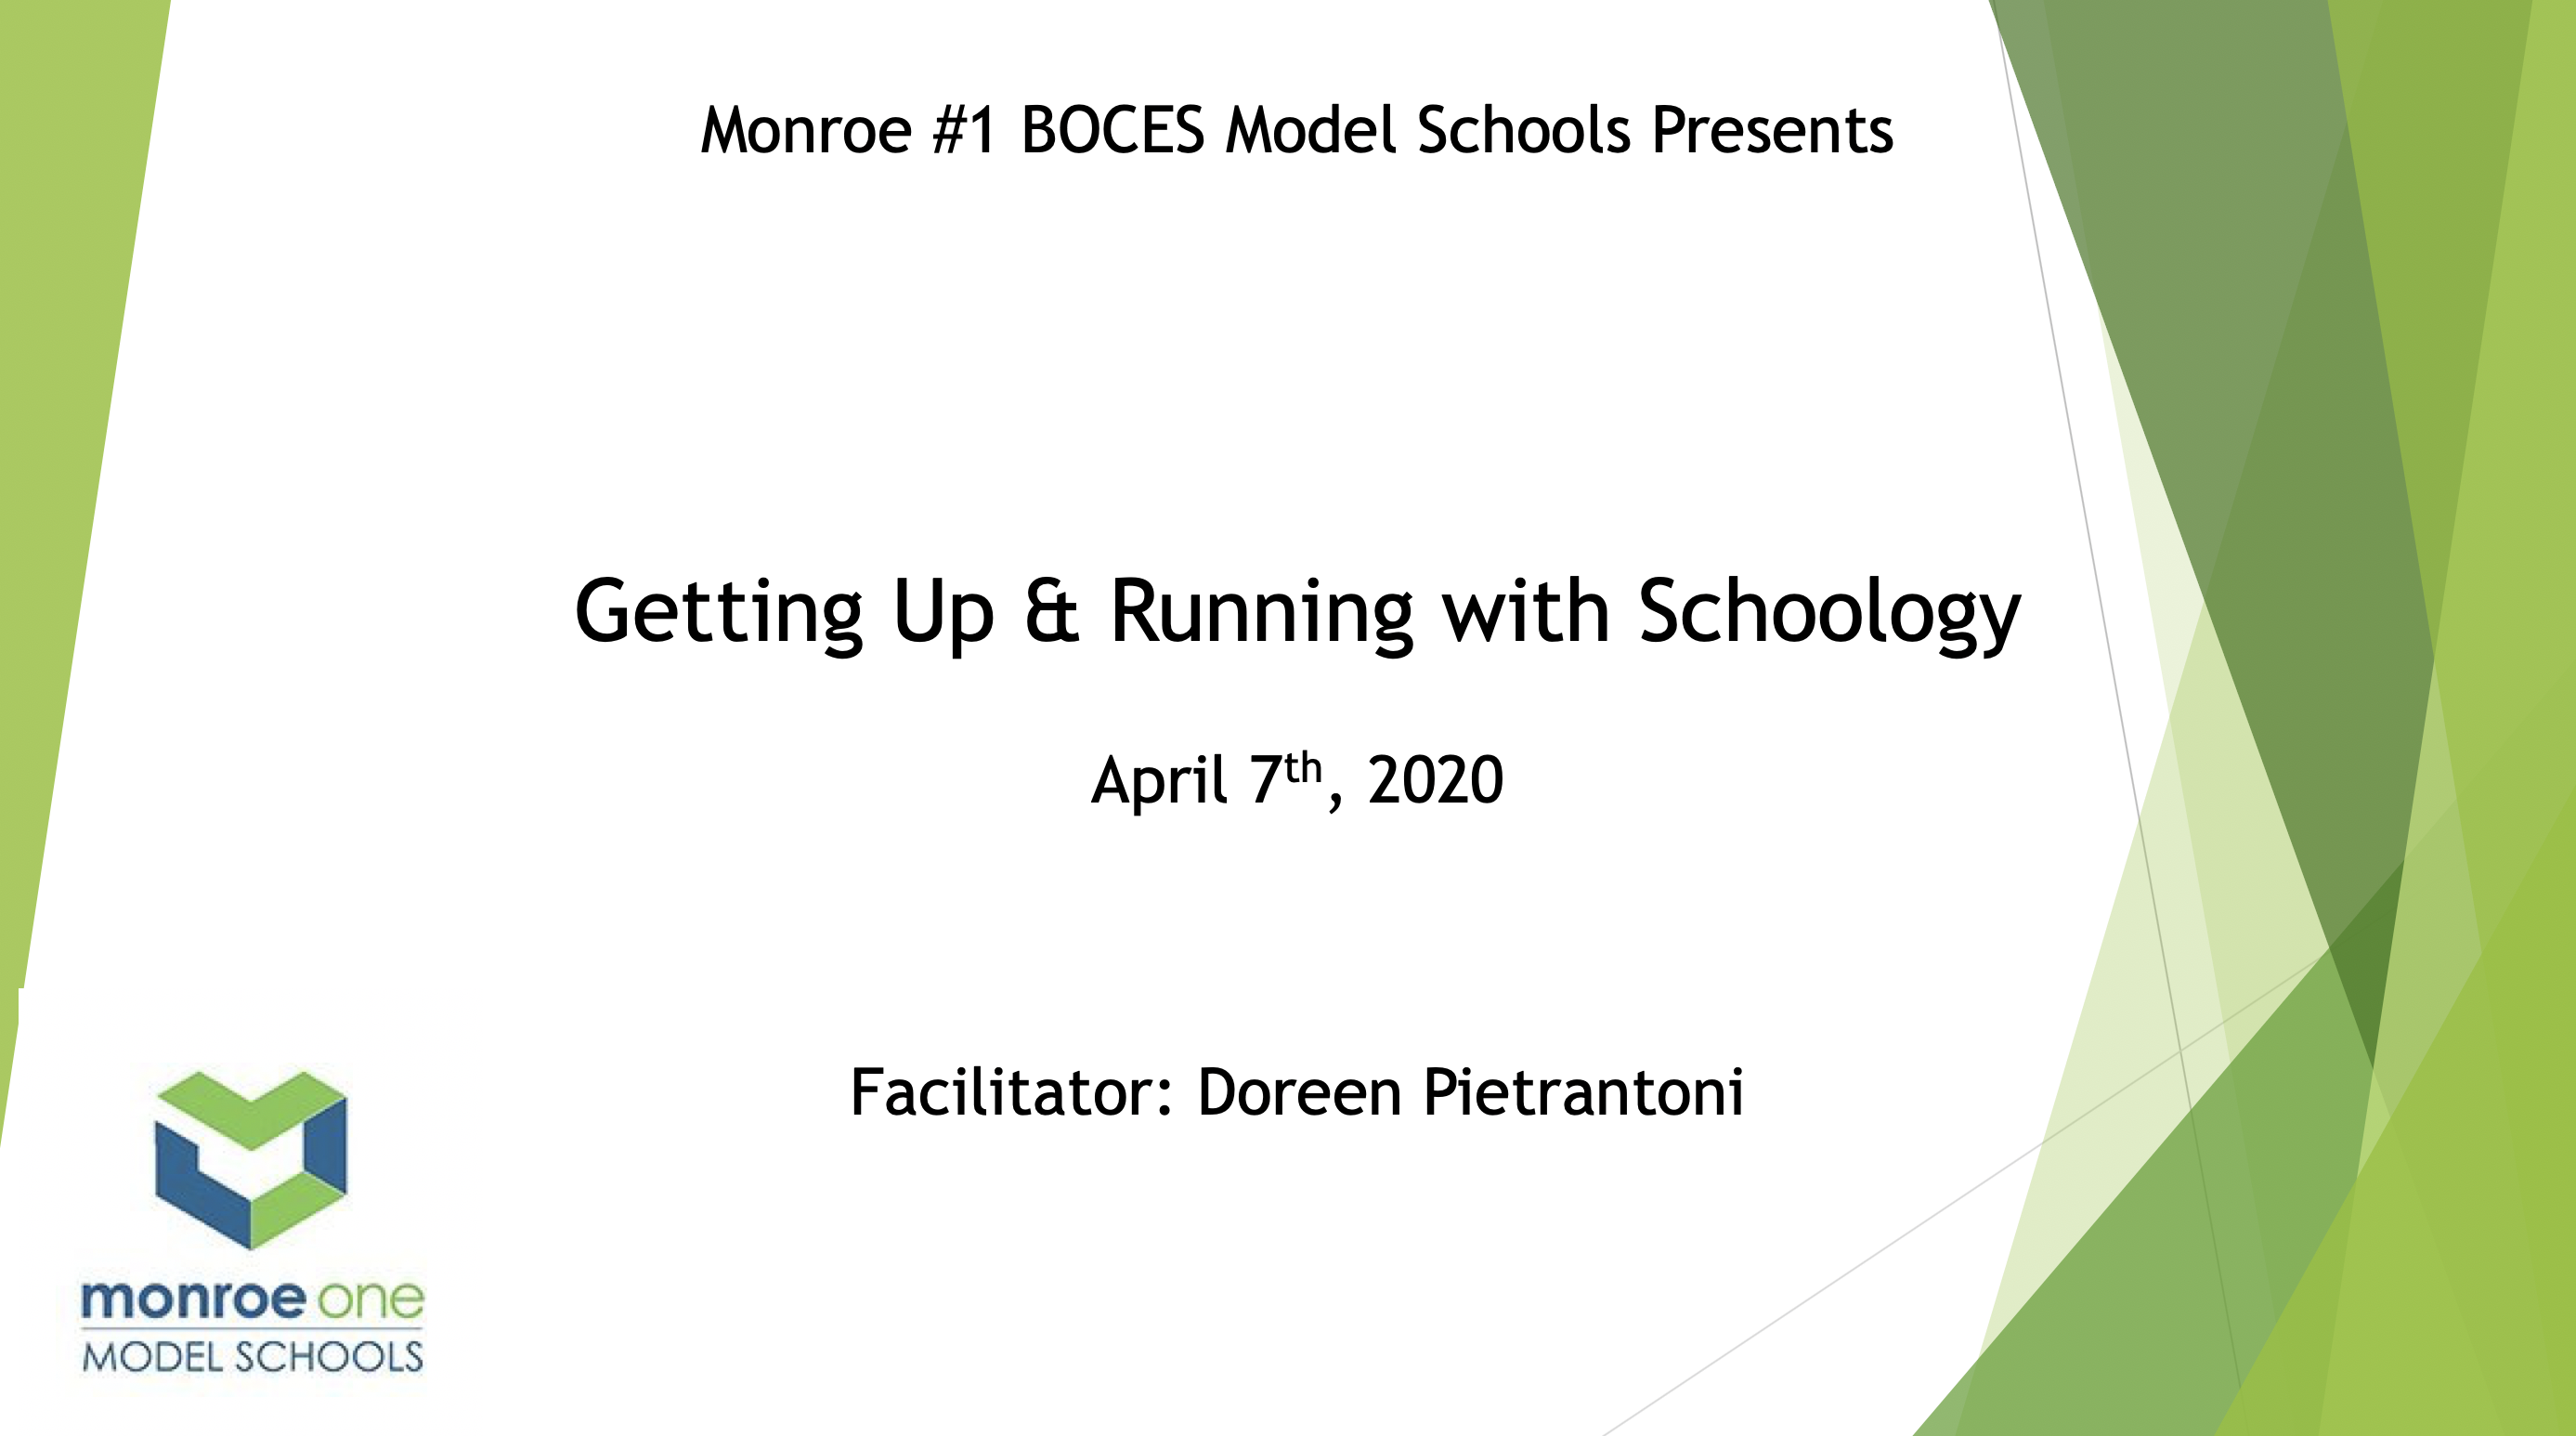 Getting Up & Running With Schoology